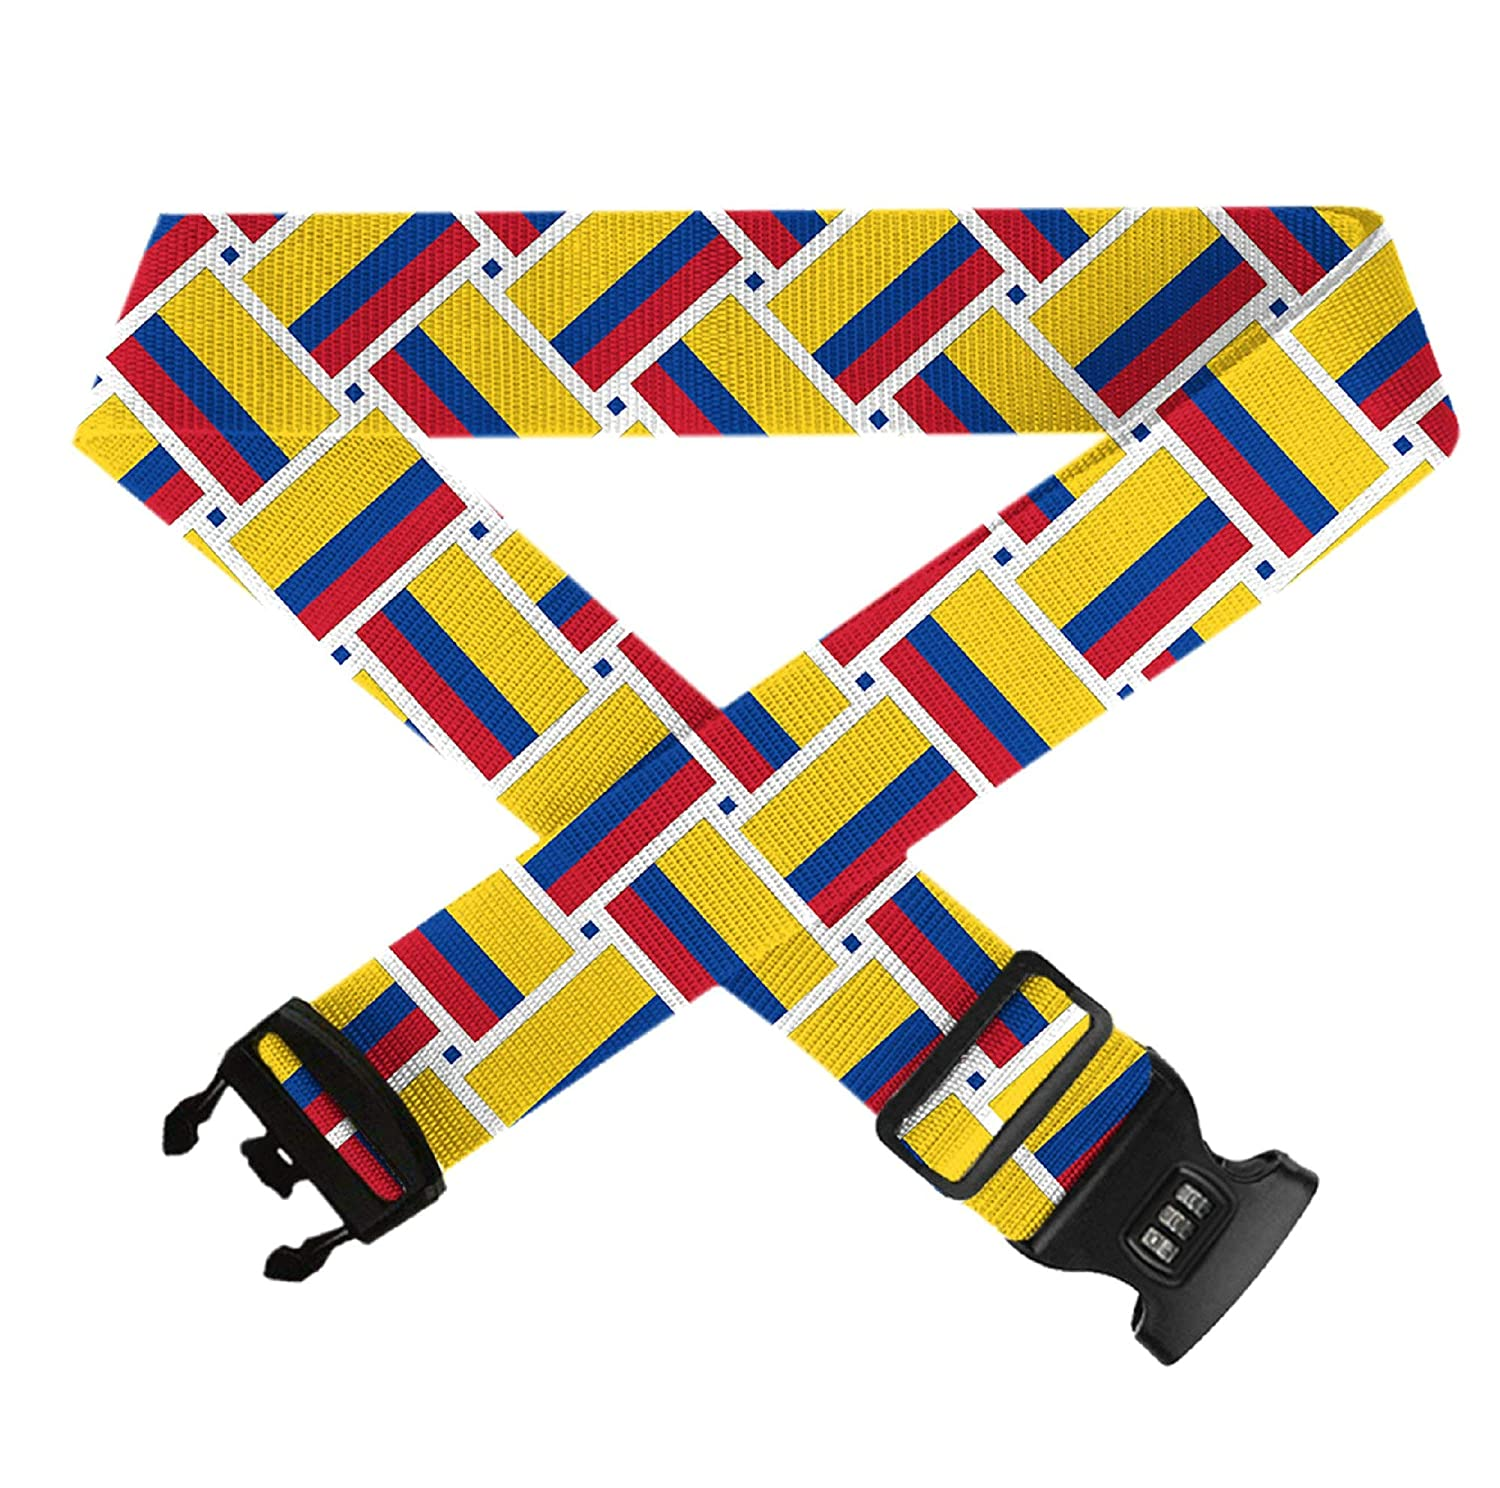 Luggage Straps Adjustable Suitcase Belts with 3 Dial Digit Combination Travel Bag Accessories Colombia Flag Weave